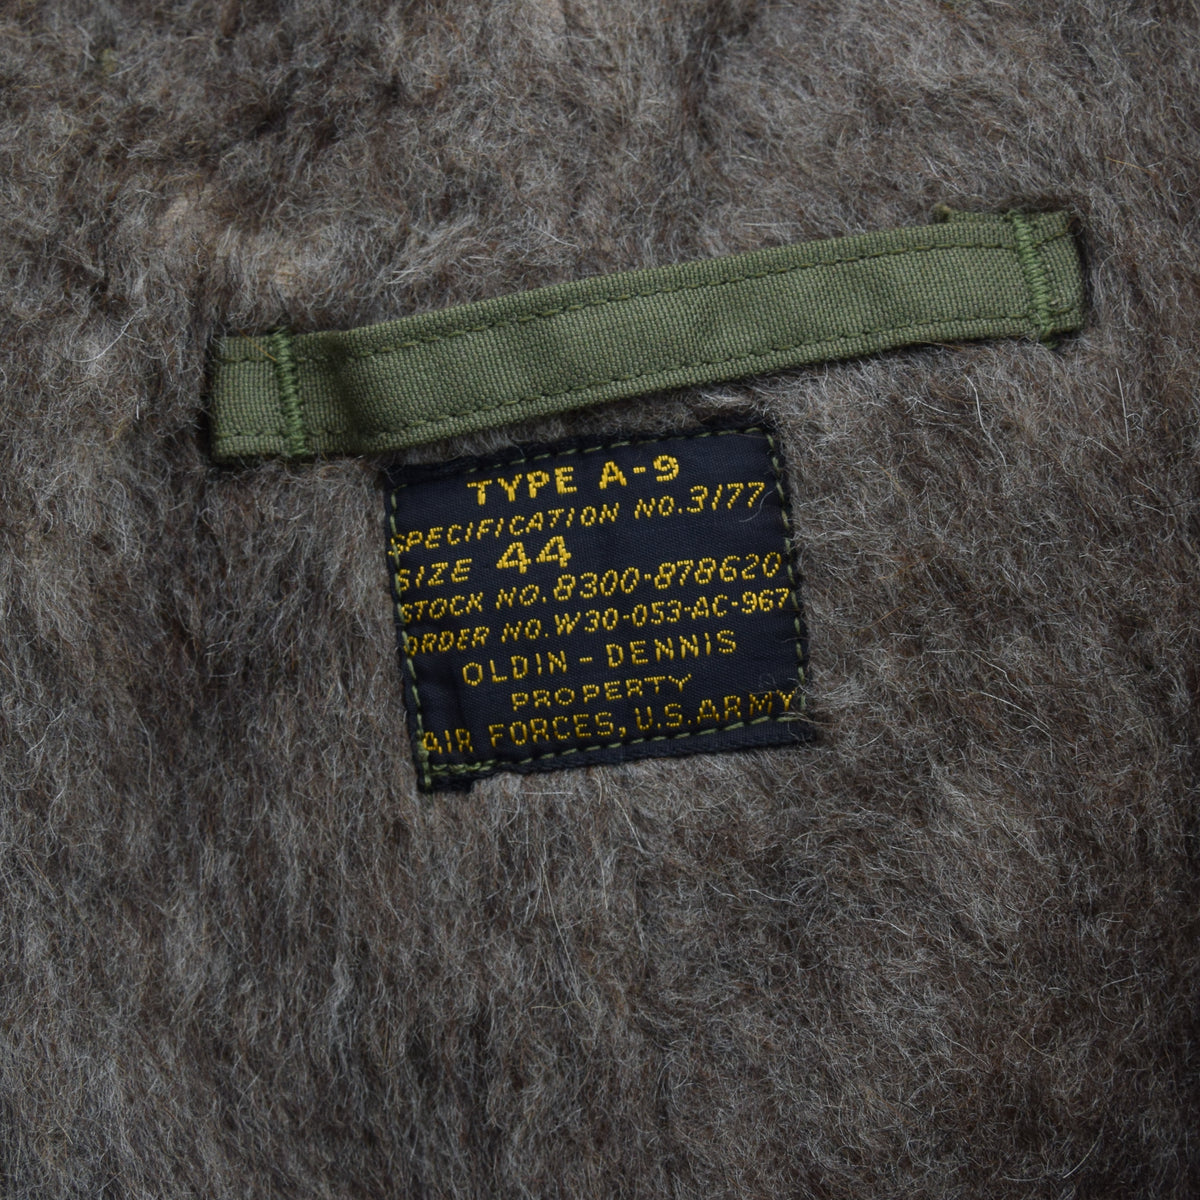 Rare Vintage 1940s WWII USAAF A-9 Alpaca Lined Flight Pant Trousers 38 LABEL